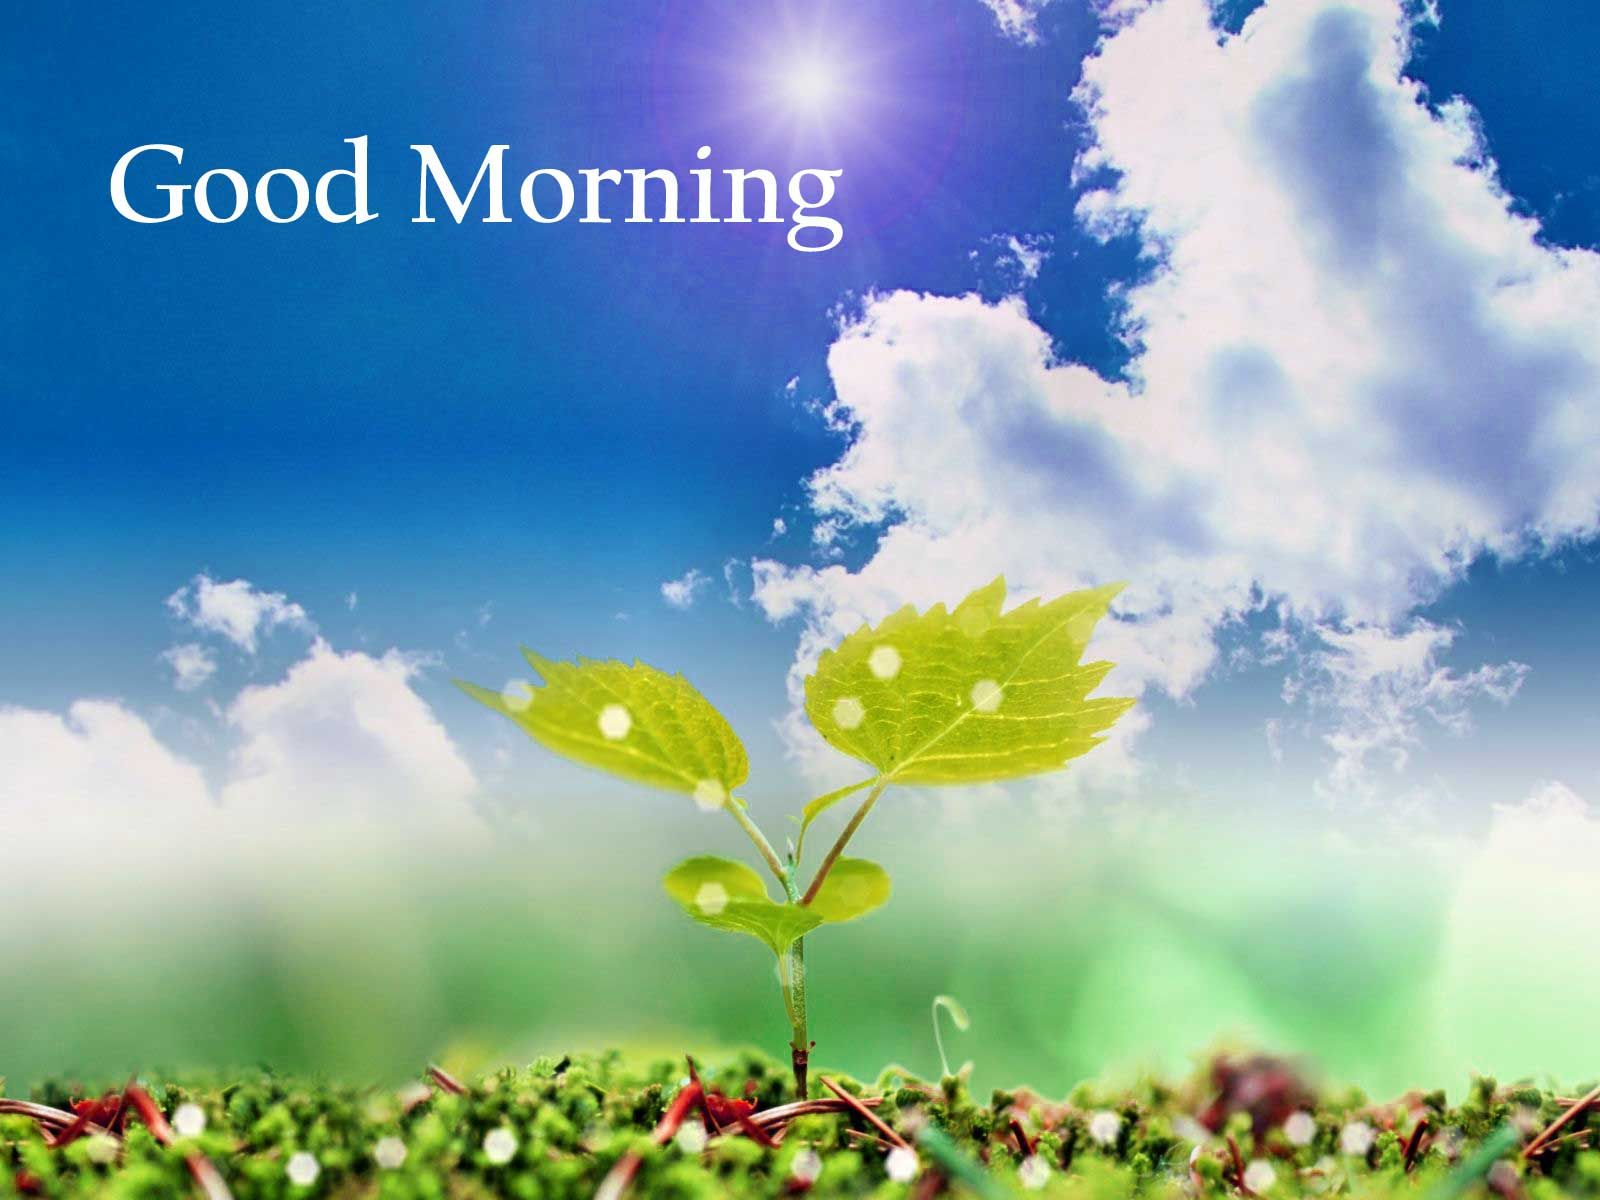 Hd Of Good Morning Nature For Pc Full Flowers Here Computer Free Good Morning Images Good Morning Nature Good Morning Photos